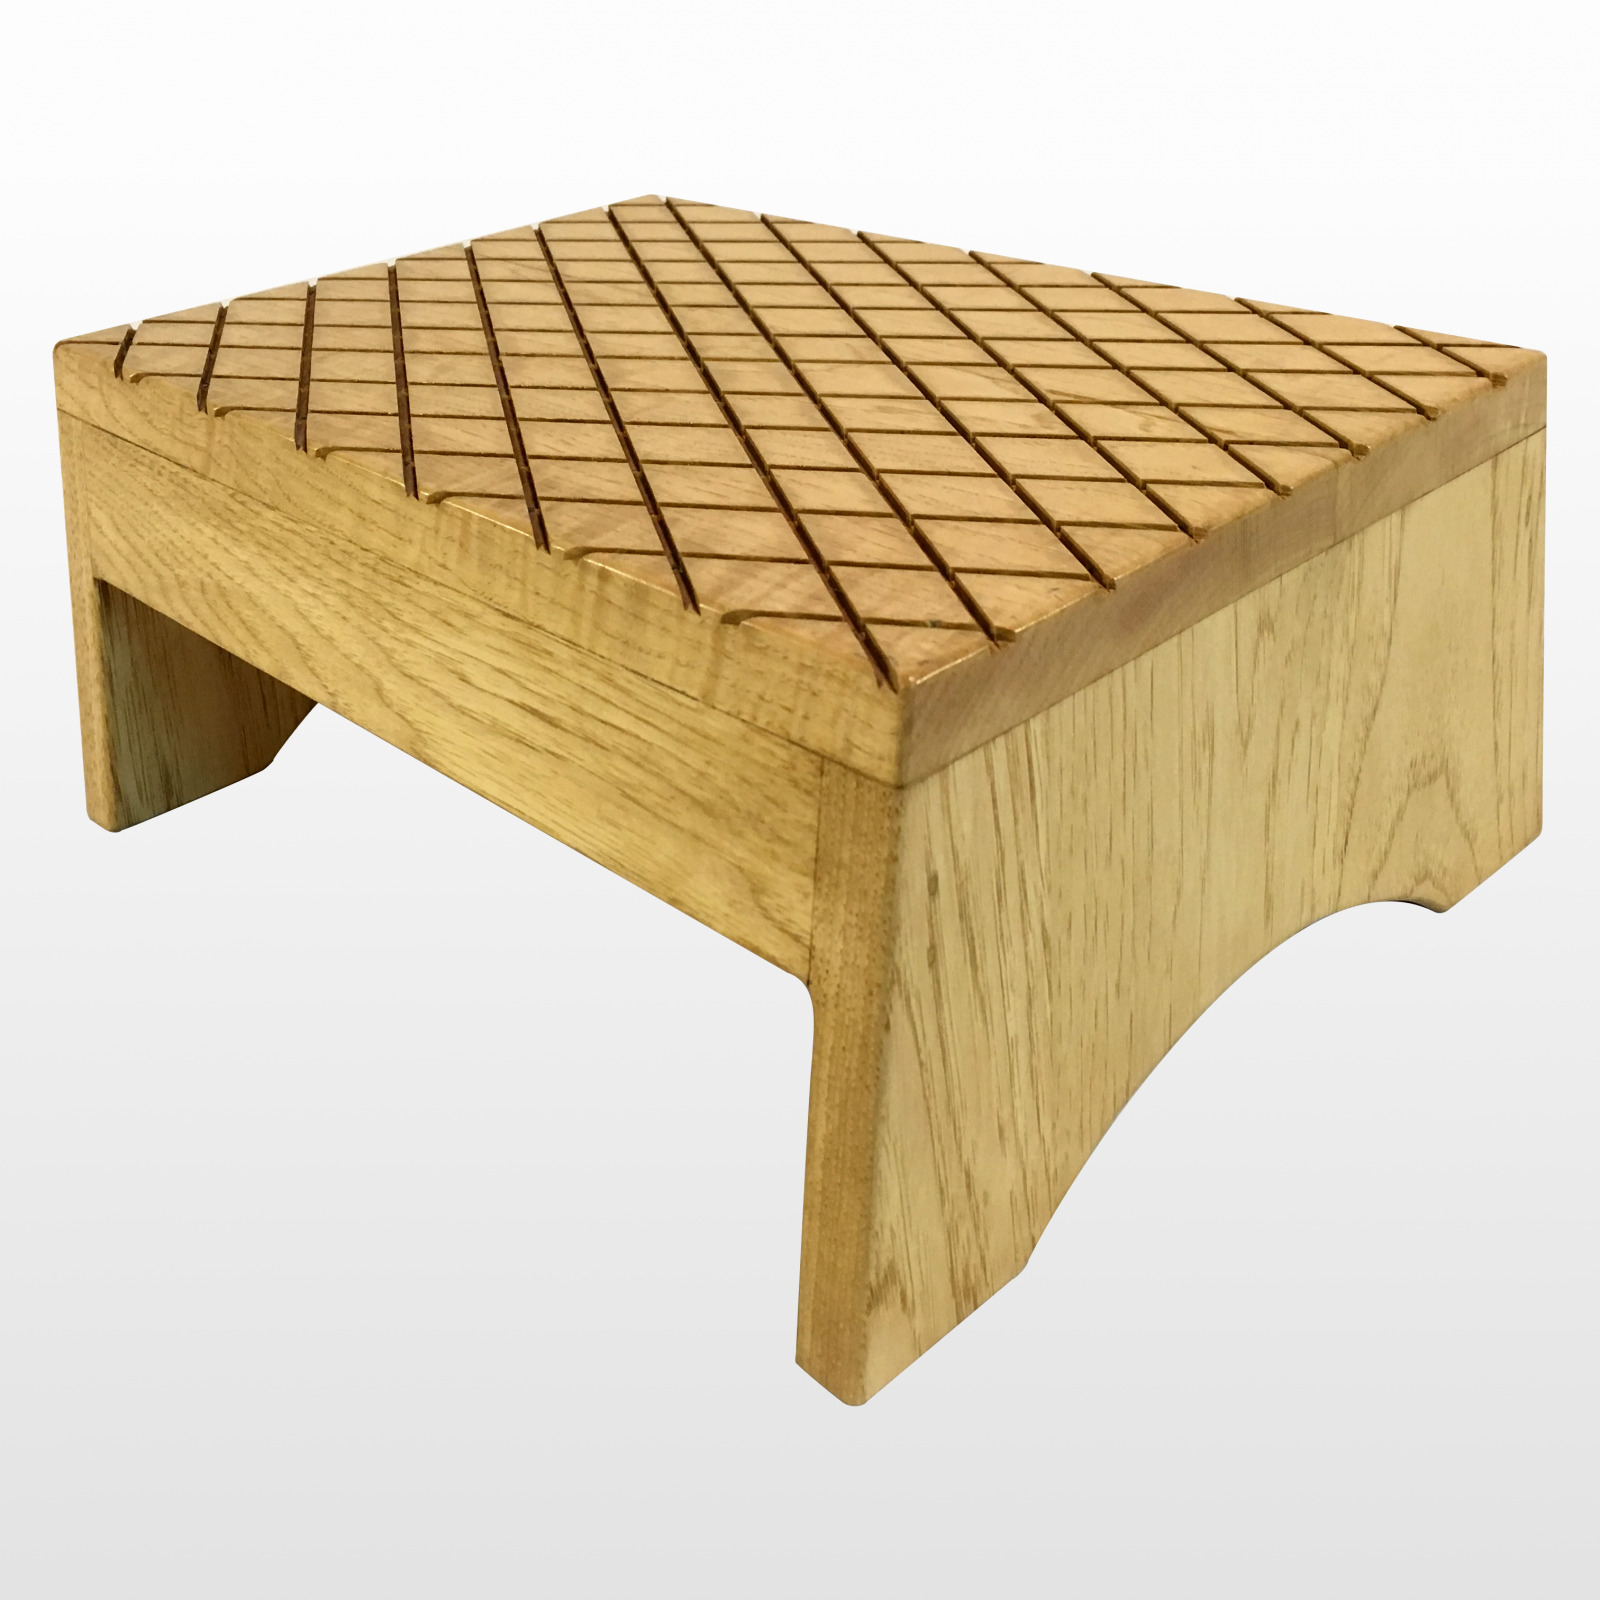 Wood Step Stool Bed Step Wooden Bench Choose Finish